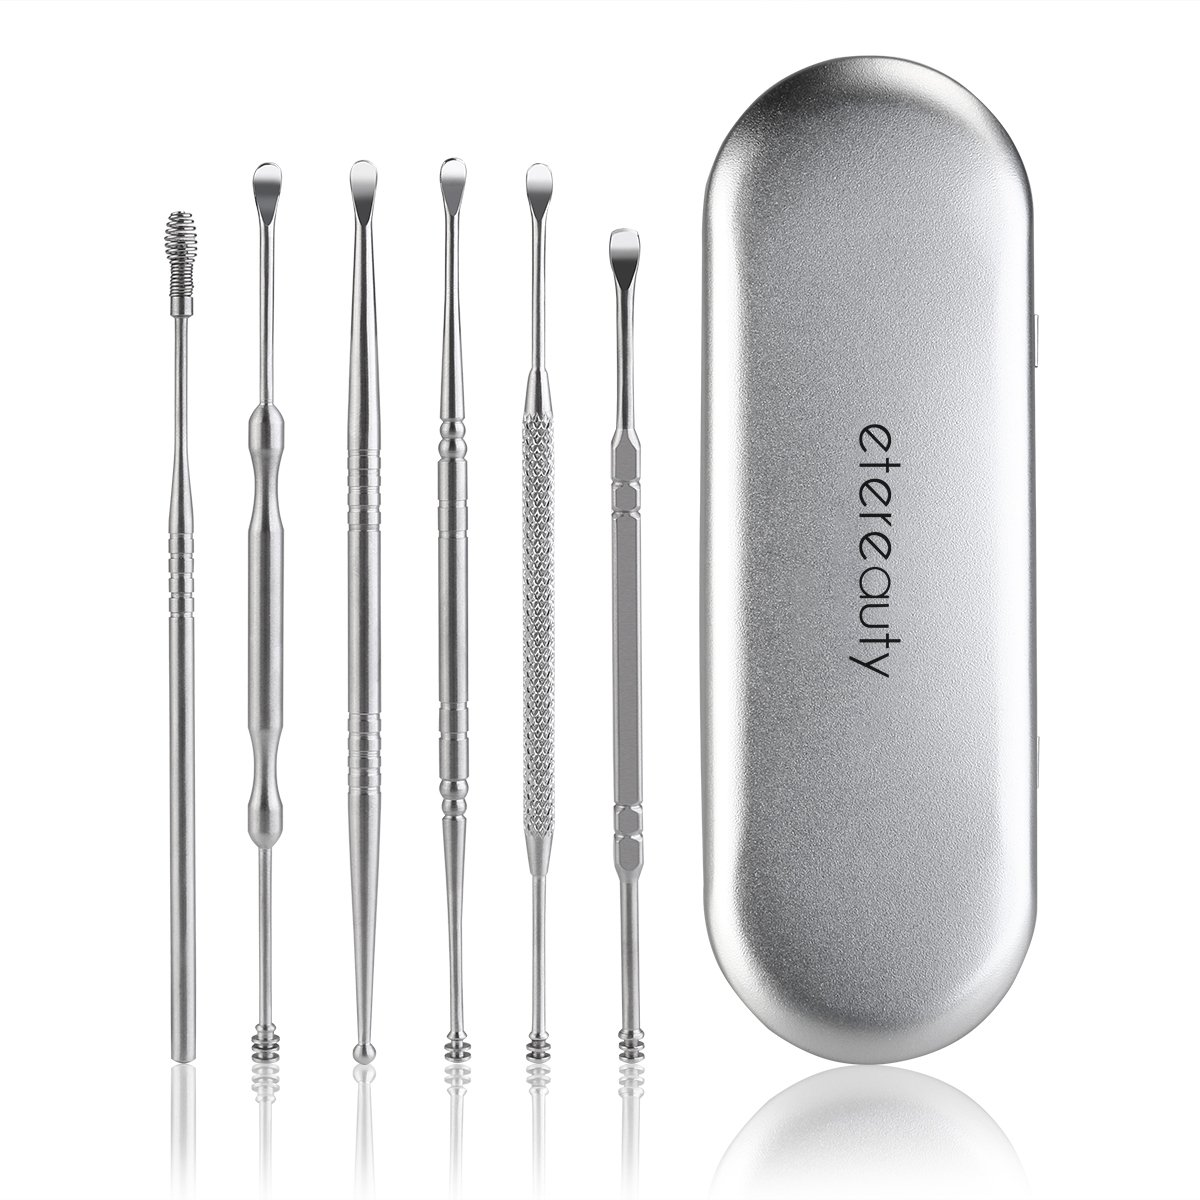 6pcs Ear Pick Ear Curette Earwax Removal with Storage Box